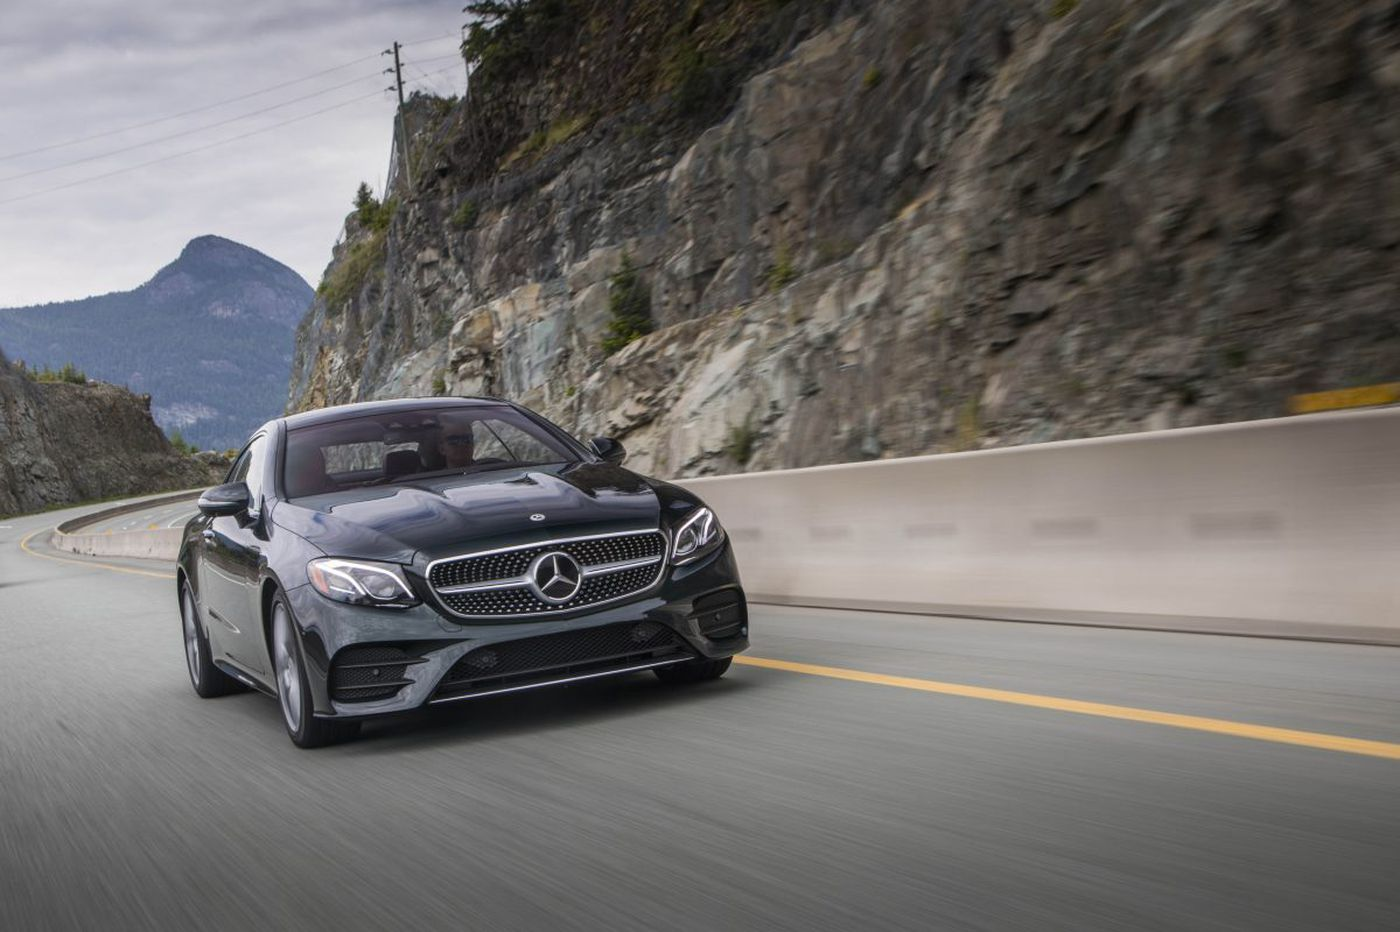 2018 Mercedes-Benz E400 Coupe is a sporty, luxury car